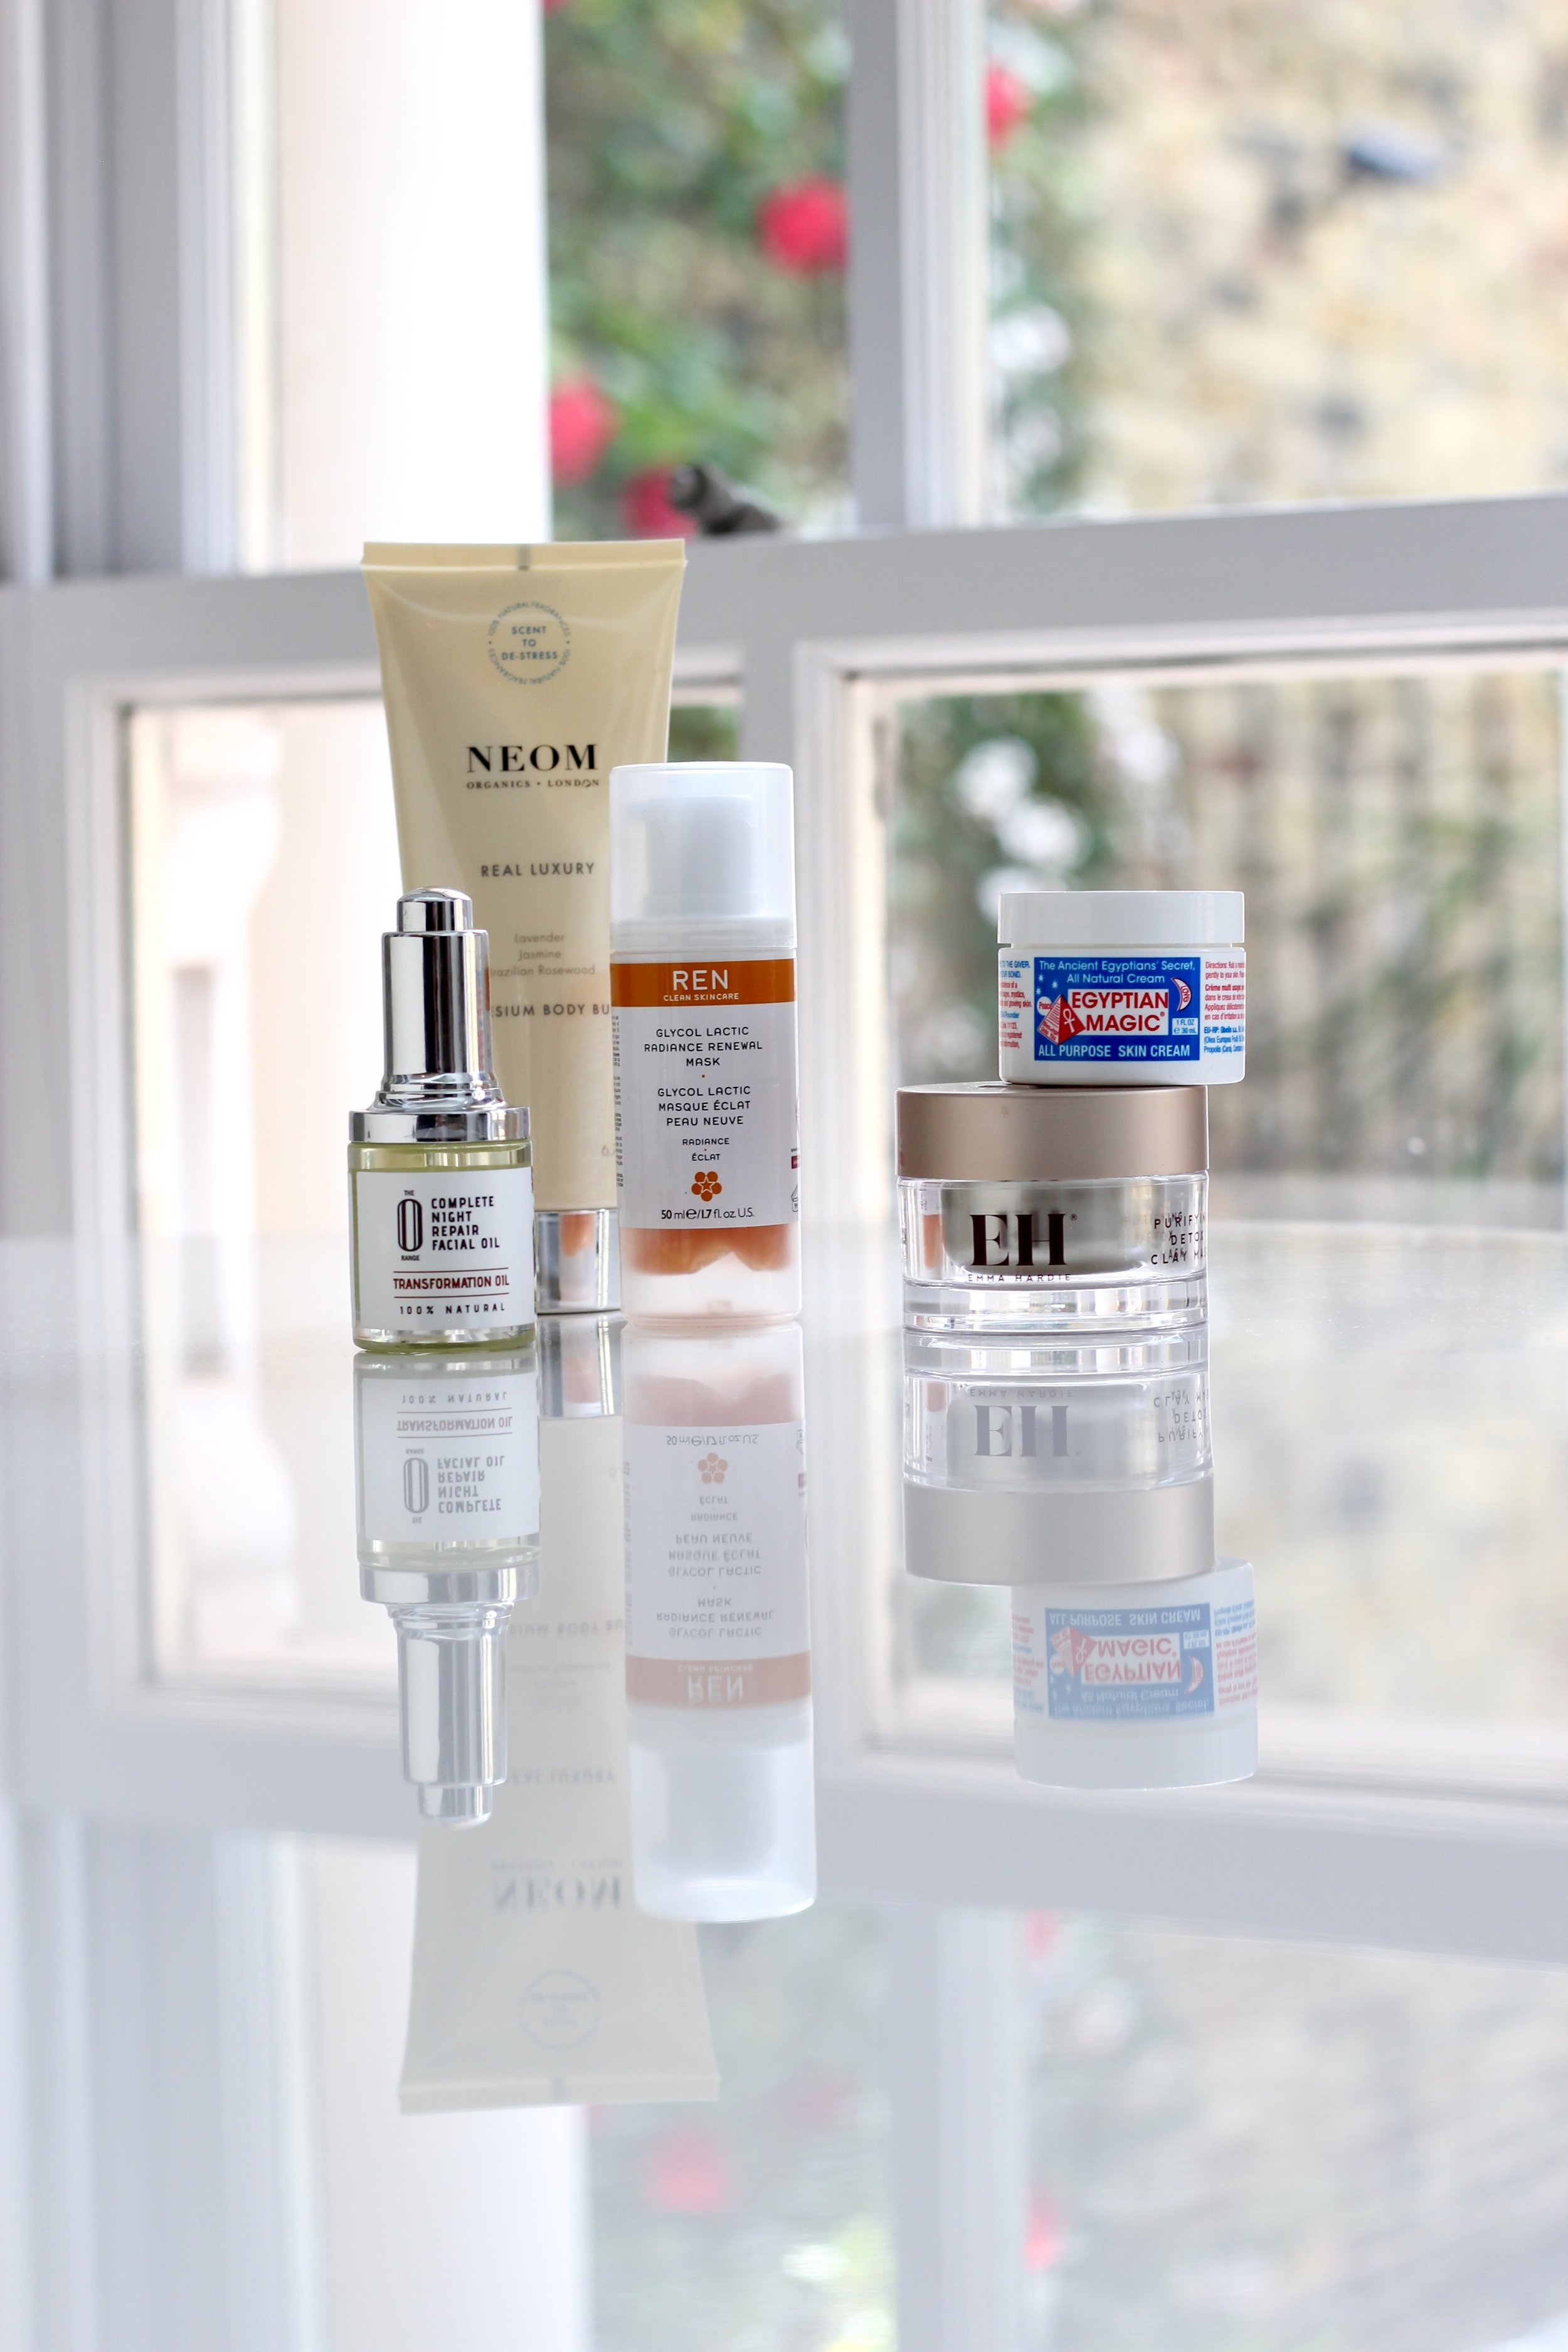 MY CURRENT TOP SKINCARE GO-TO'S FOR DRY AND SENSITIVE SKIN - Please note that all of these products have been gifted to us. We have used all of them for a long time, and have included the products in this post because we genuinely like them and can therefore recommend them.